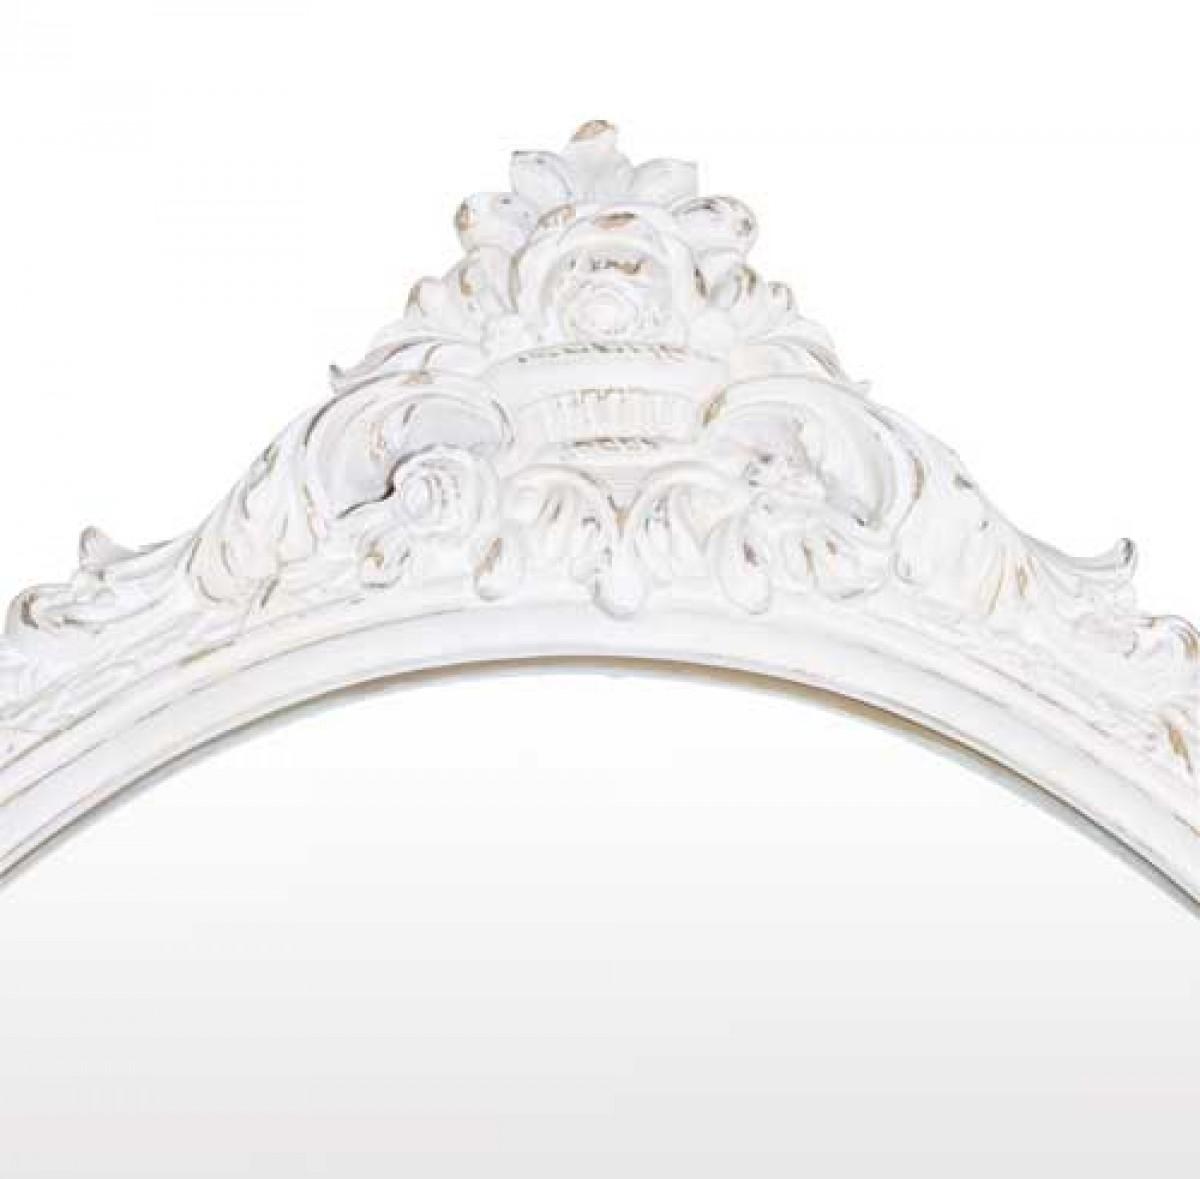 Mirror Highgrove Round Lavida Trading Regarding Highgrove Mirrors (View 8 of 15)